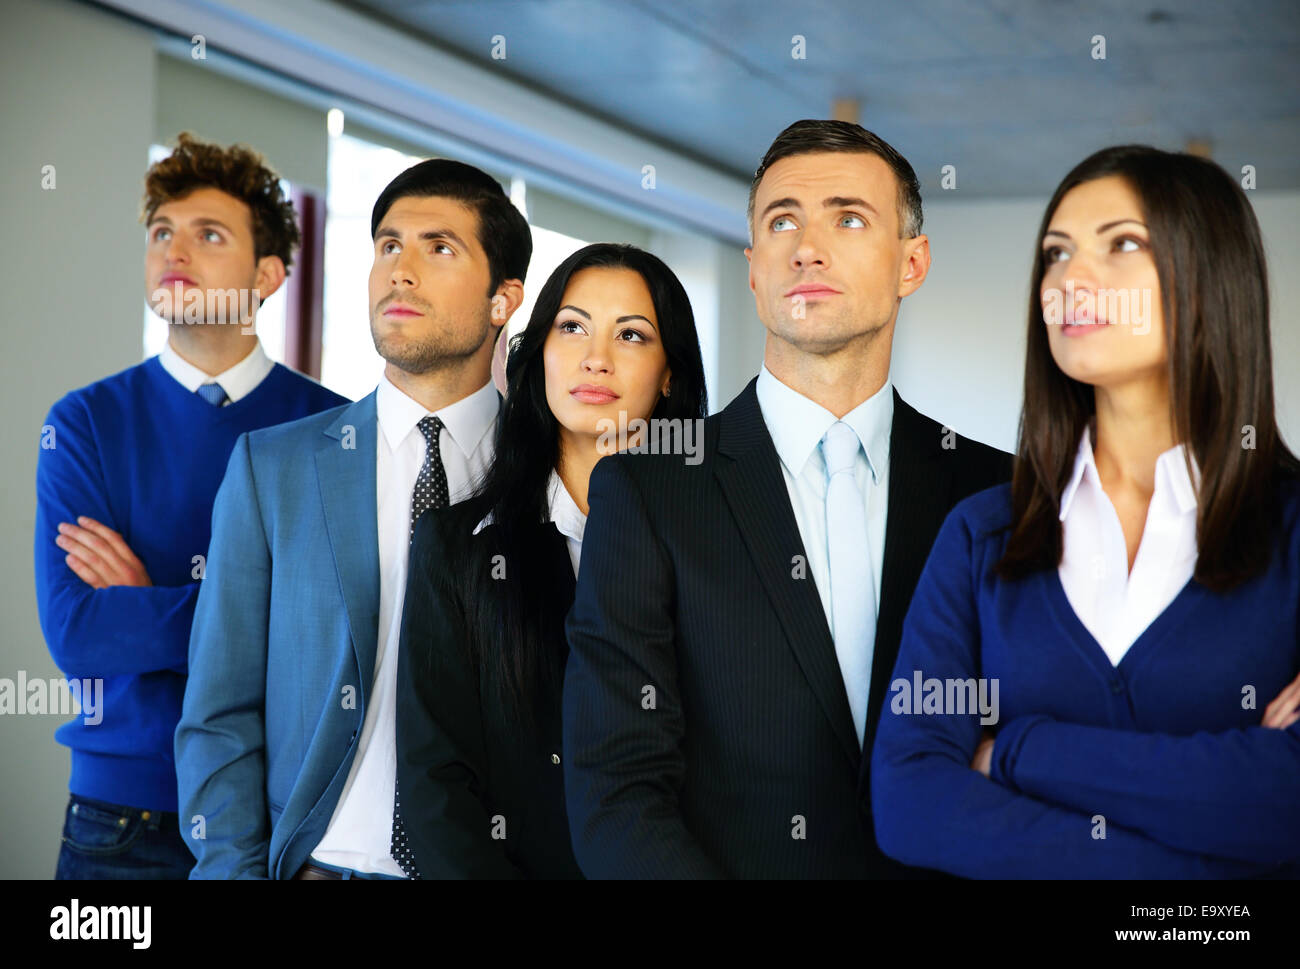 Group of business people in the office. Look to the top. - Stock Image